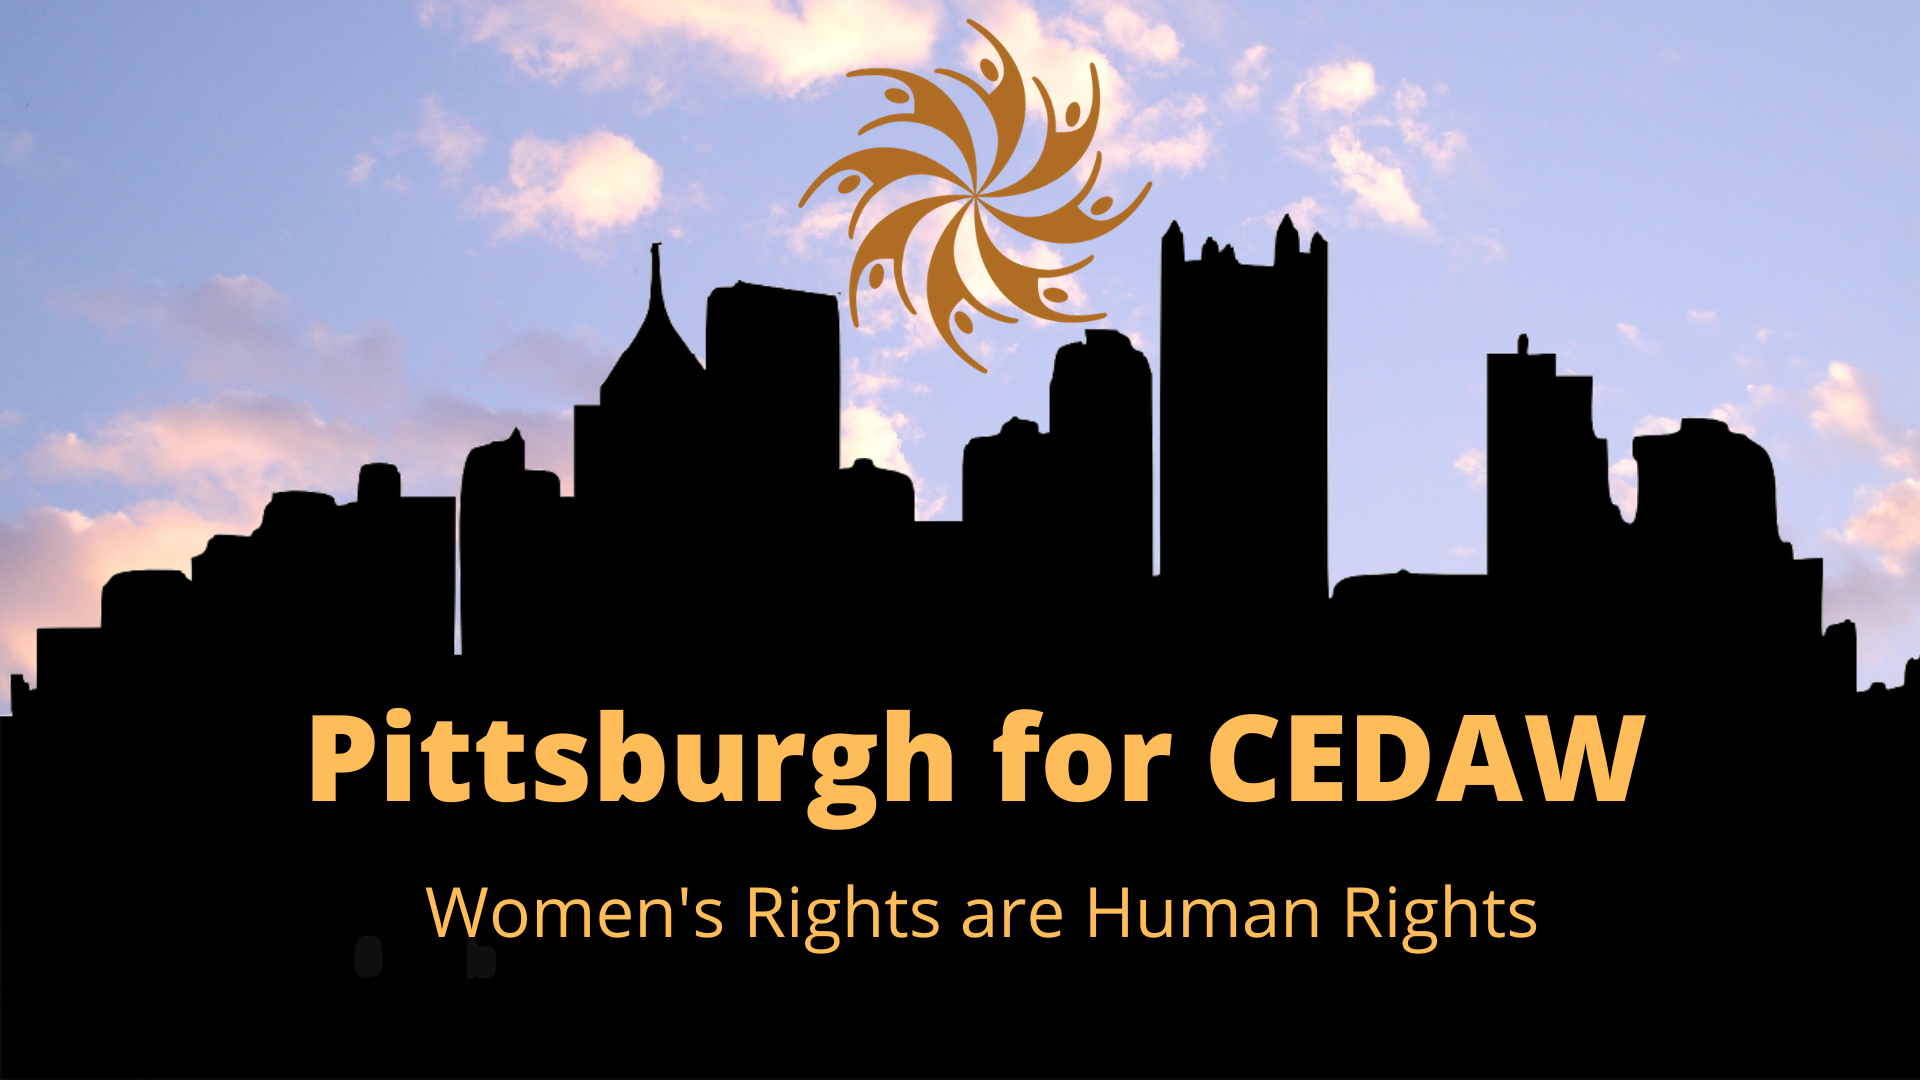 pittsburgh for cedaw text, pittsburgh city skyline silhouette